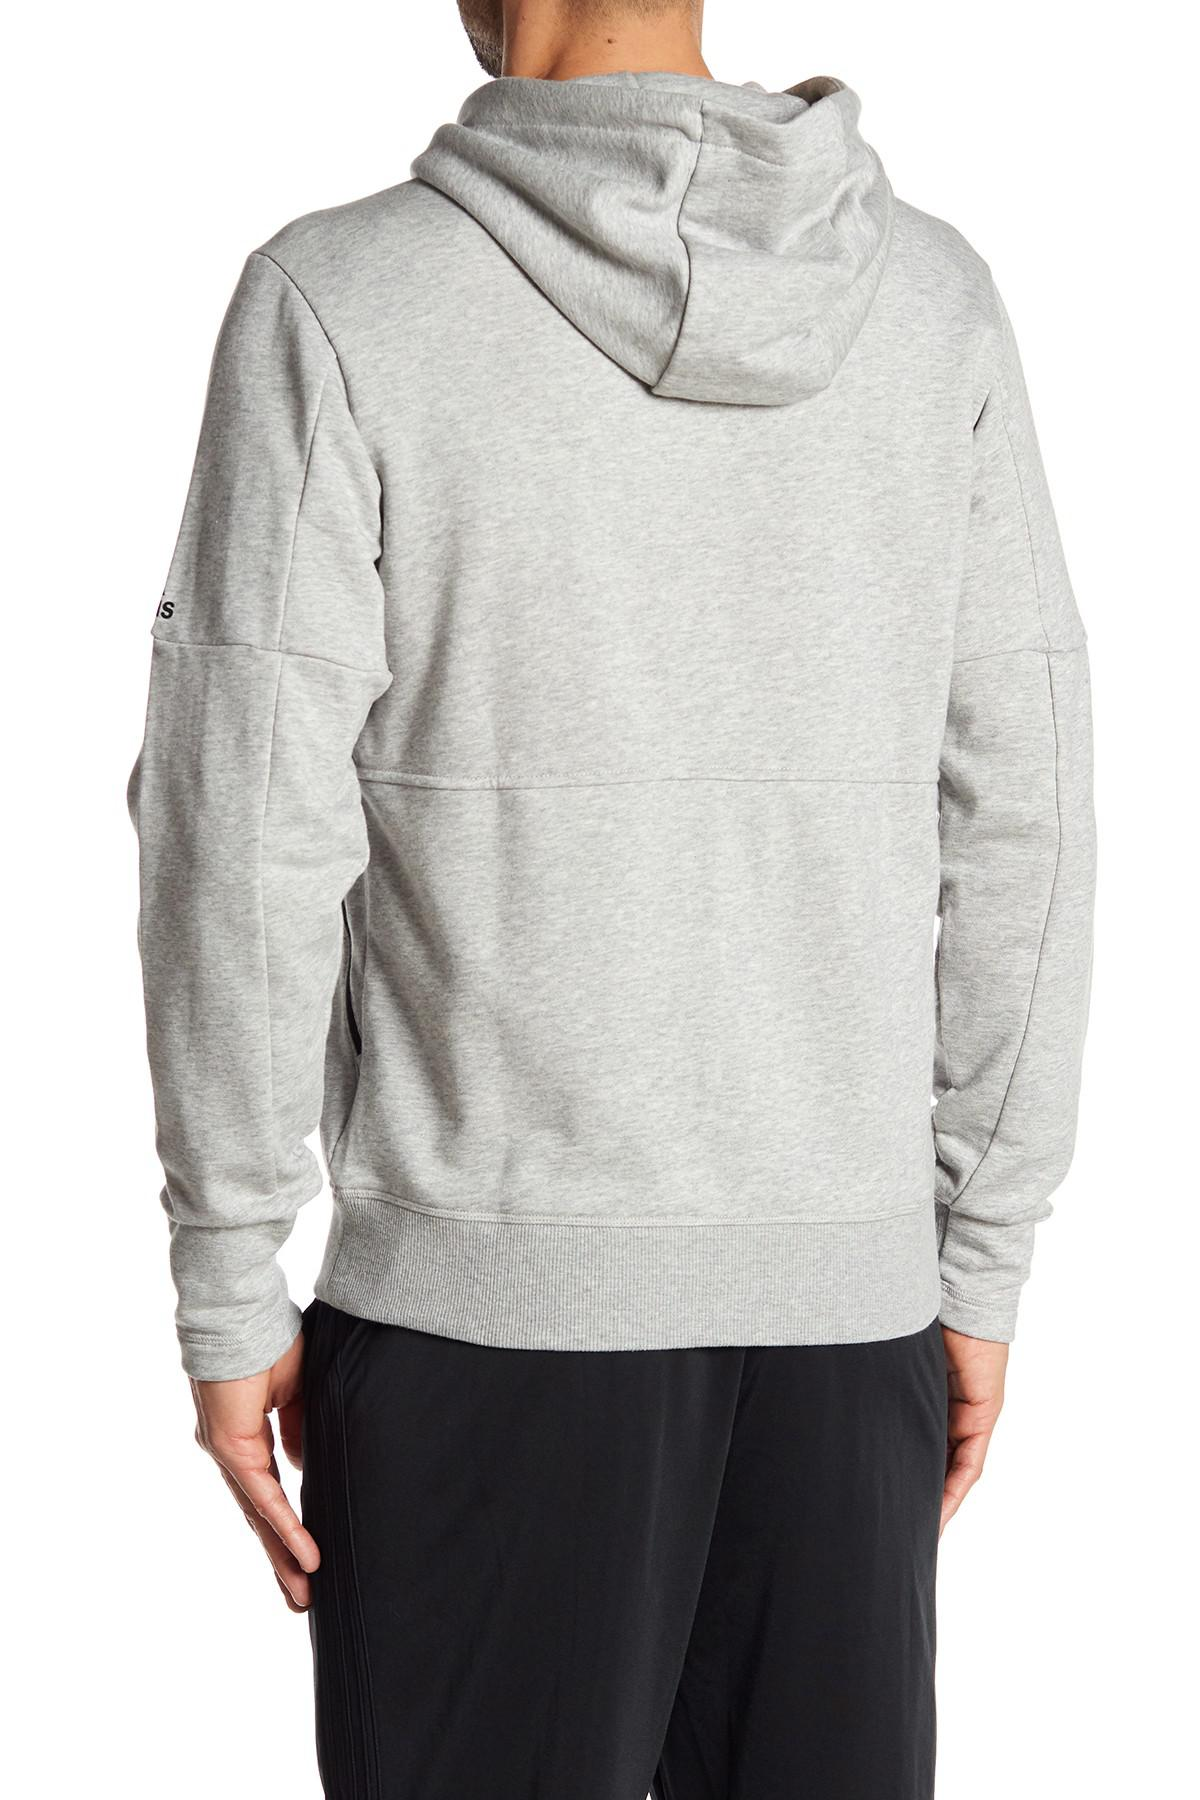 6e181eab306cf7 Lyst - adidas Knit Pullover Hoodie in Gray for Men